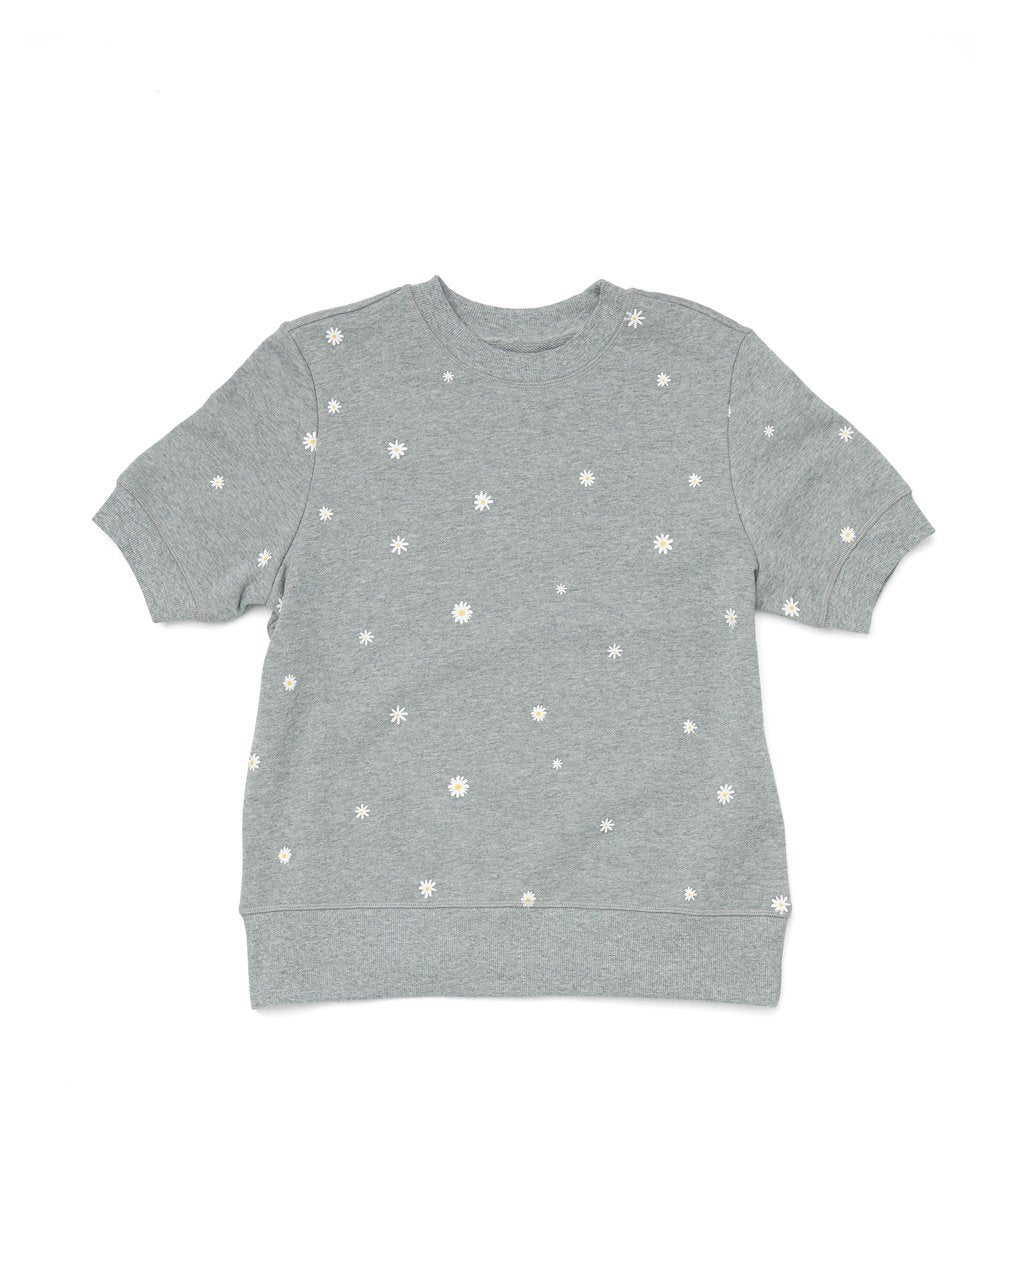 Grey short sleeve cropped sweatshirt with a spotted daisy pattern all over